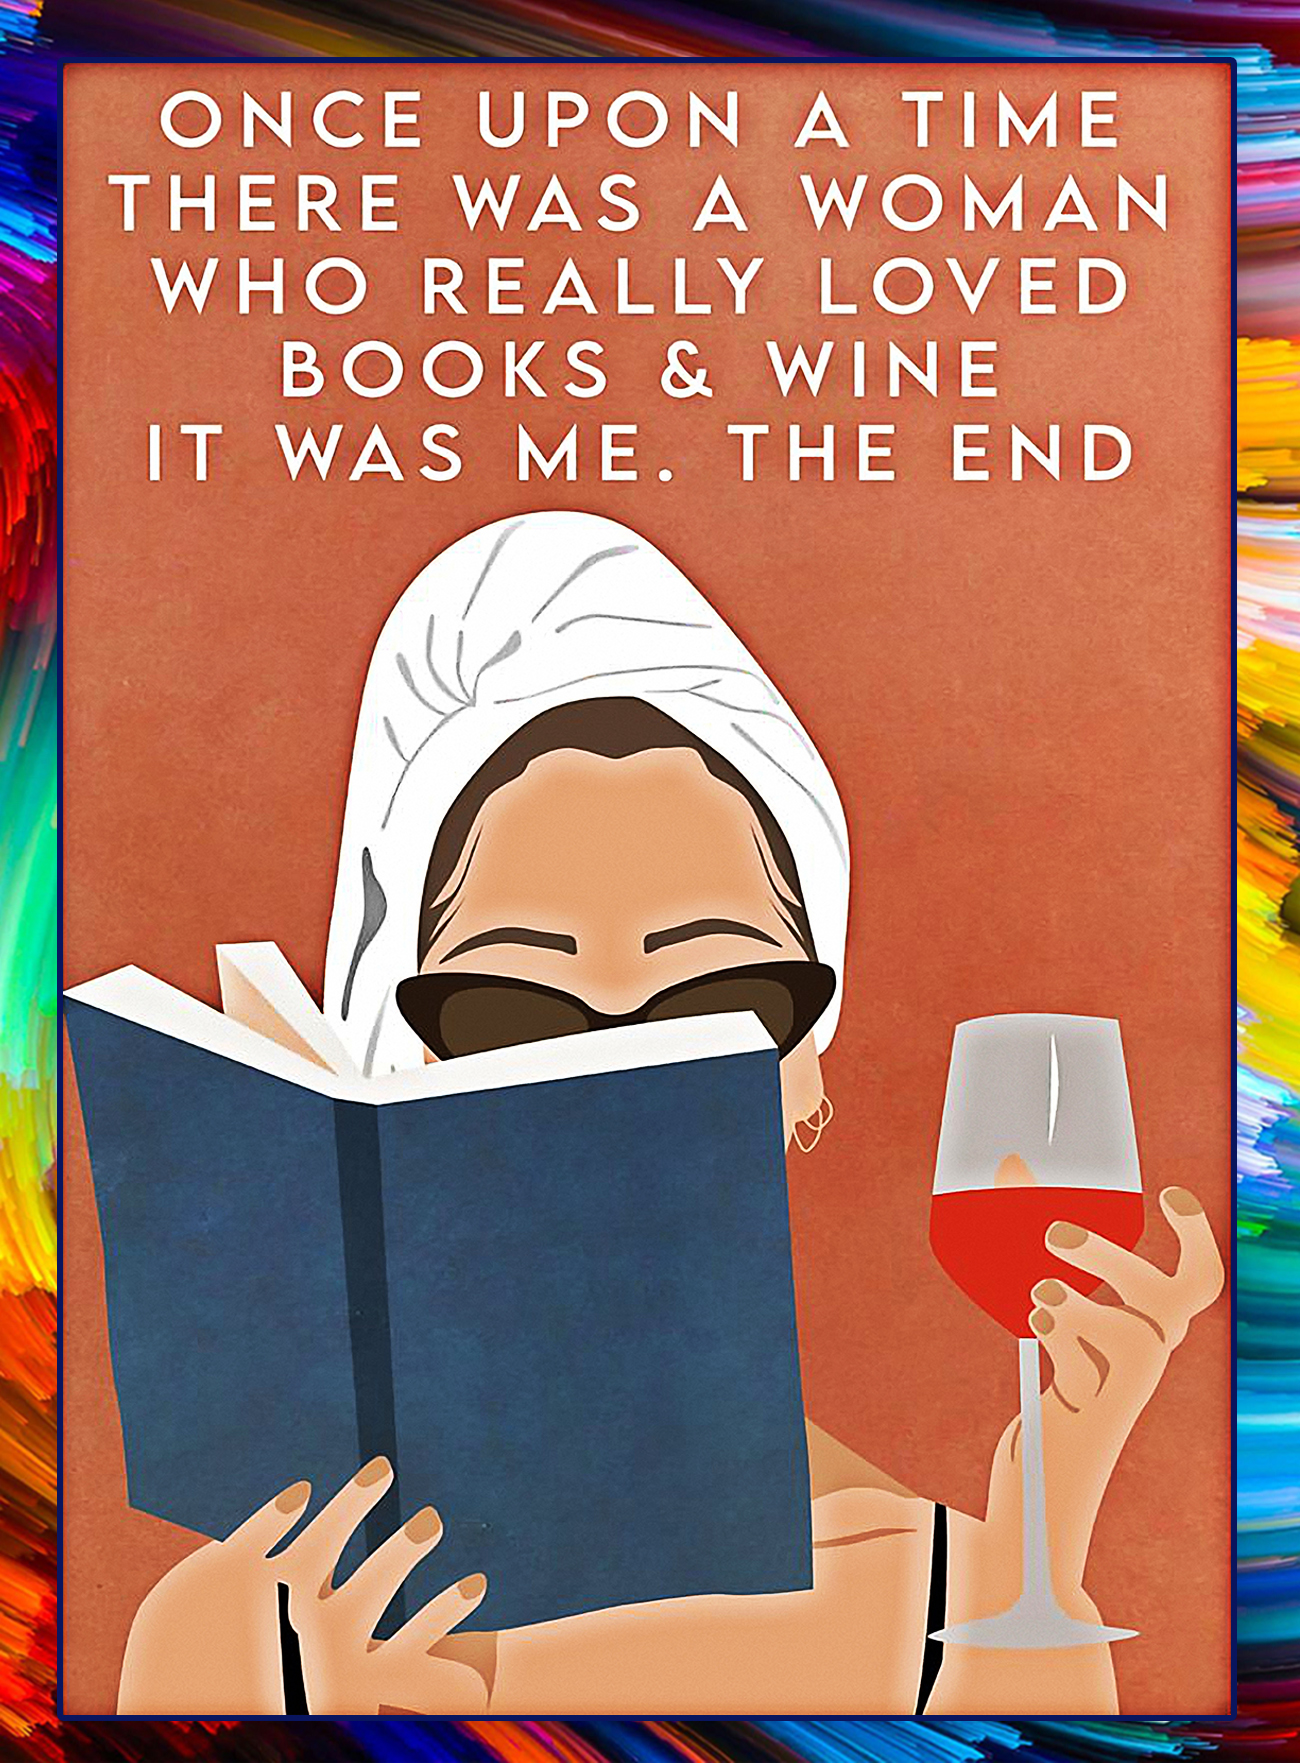 Once upon a time there was a woman who really loved books and wine poster